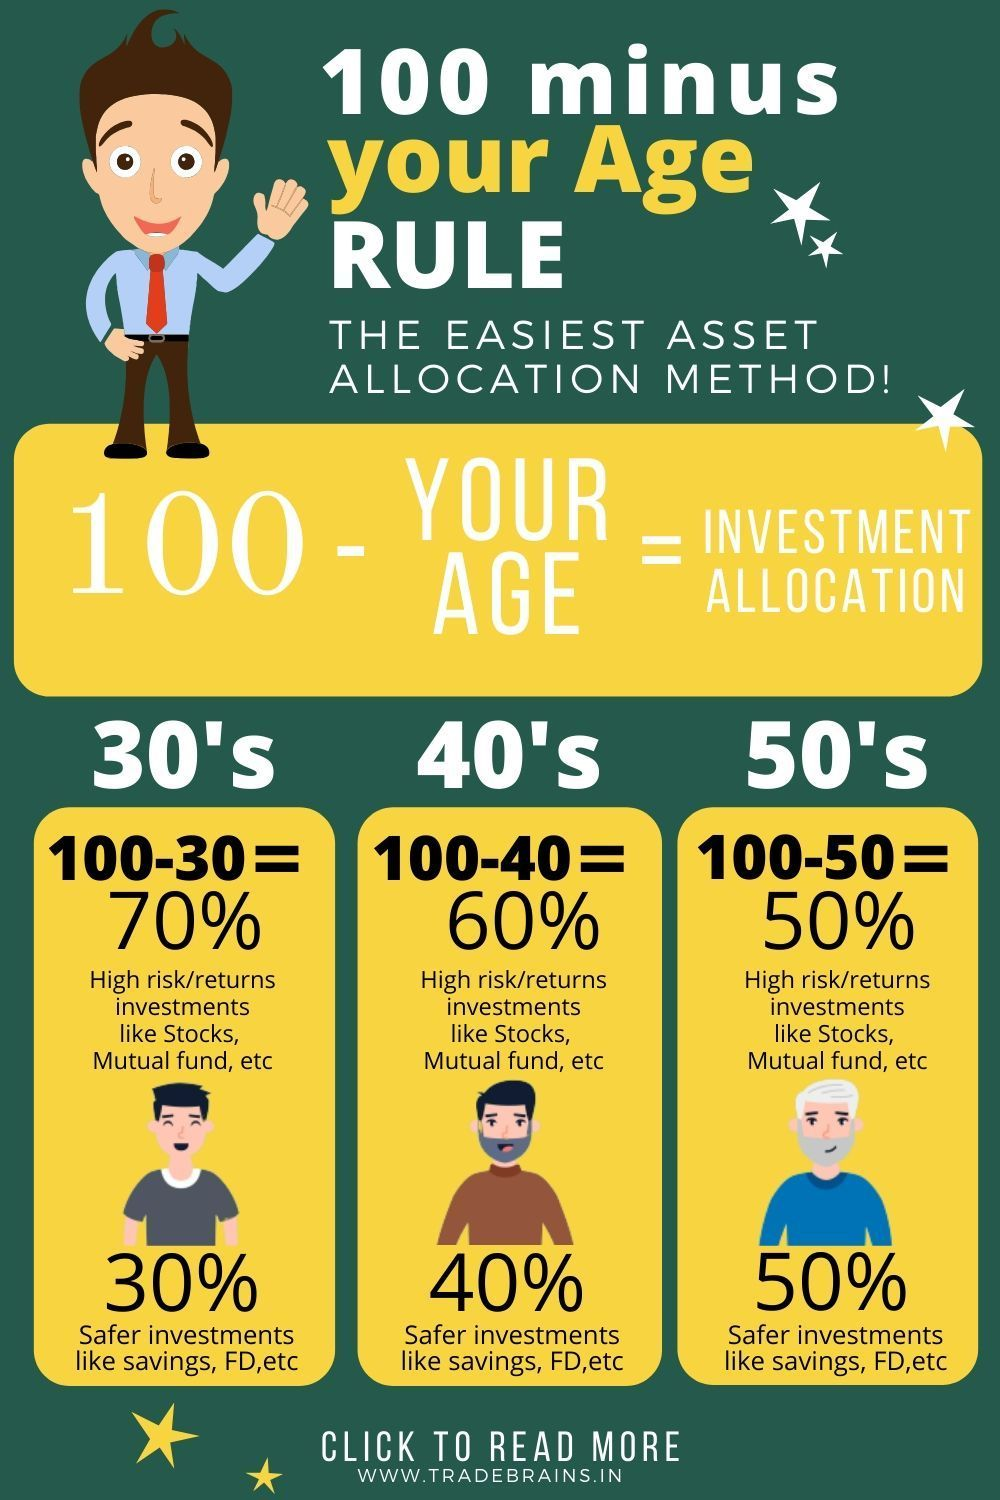 100 Minus Your Age Rule The Easiest Asset Allocation